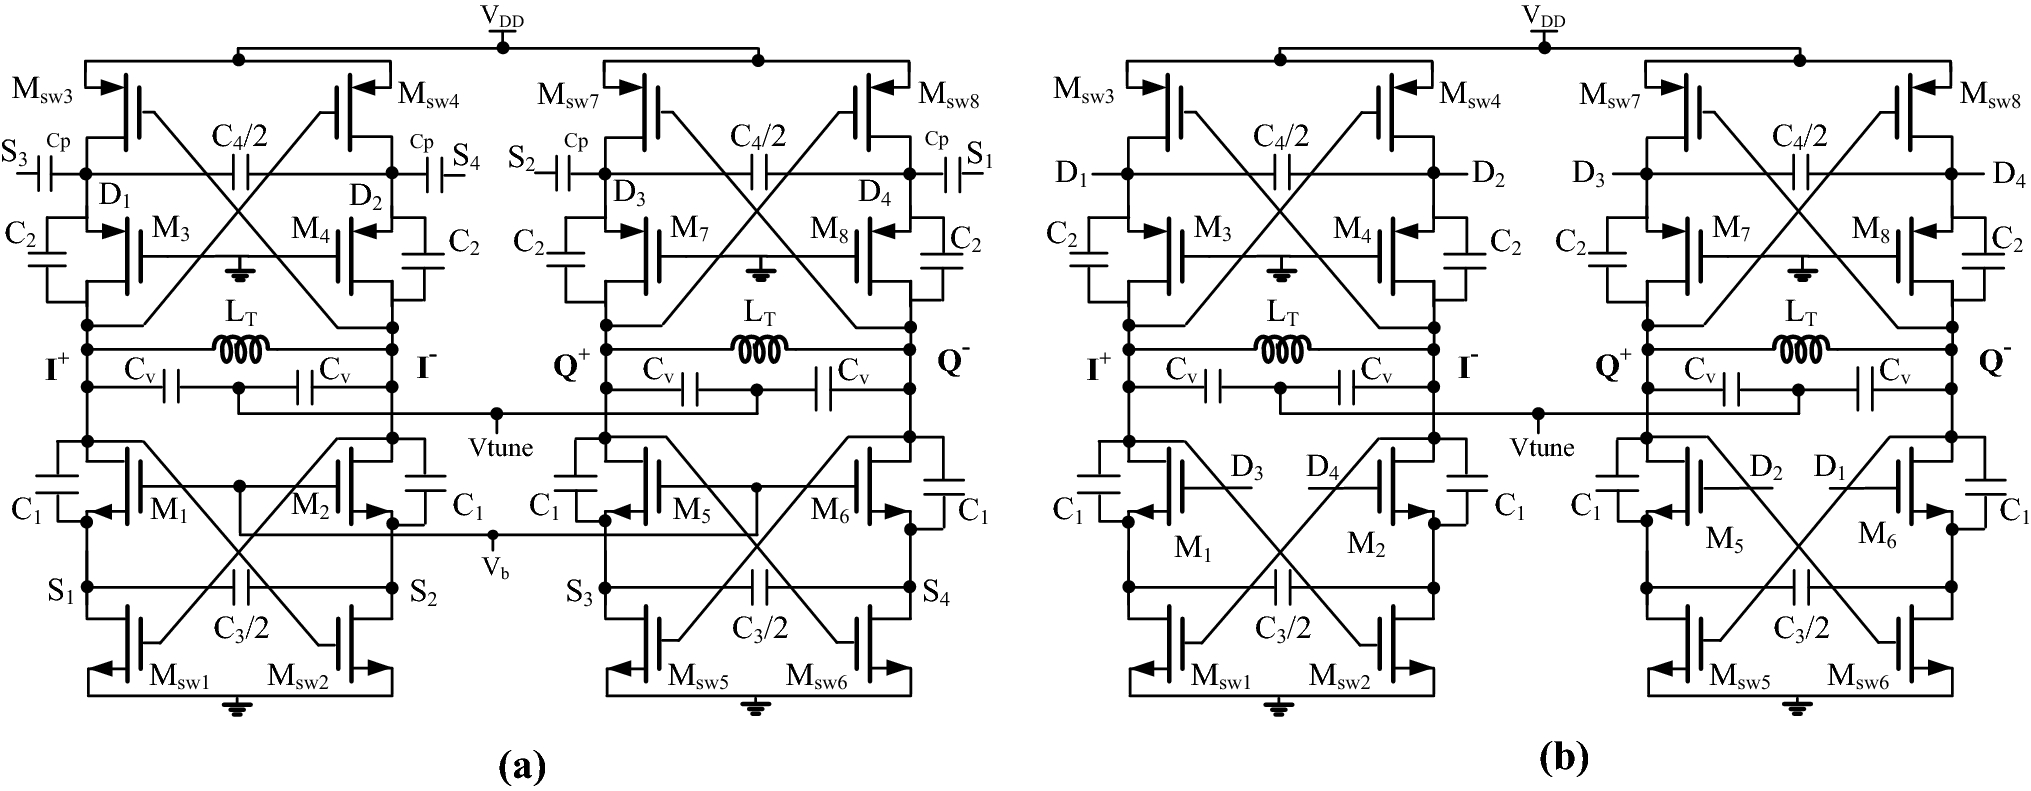 Low-power Gm-boosted complementary Colpitts LC-VCO/QVCO | SpringerLink